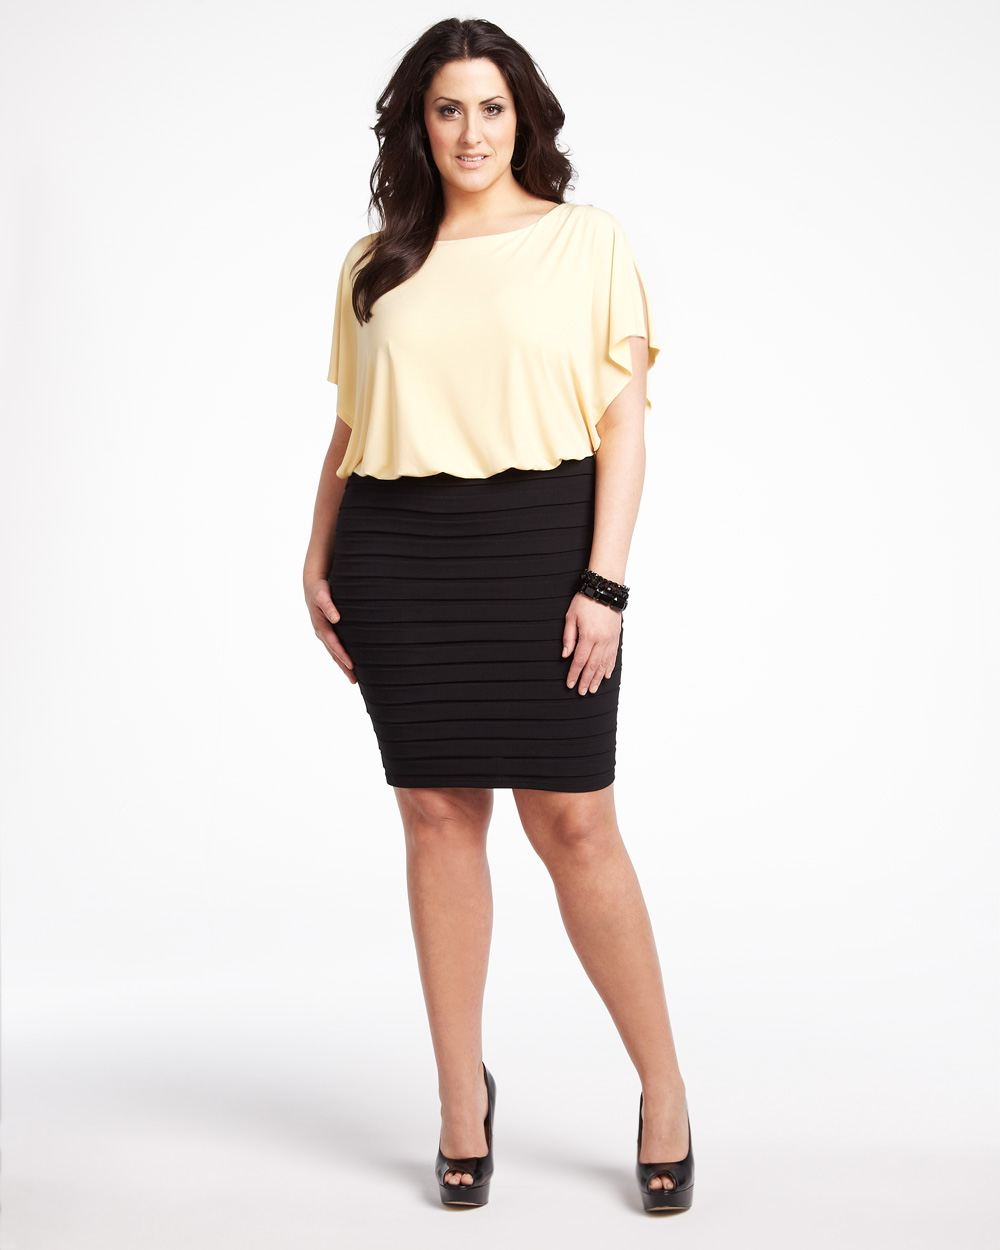 Women's Plus Size Designer Clothing Online Plus size womens clothing